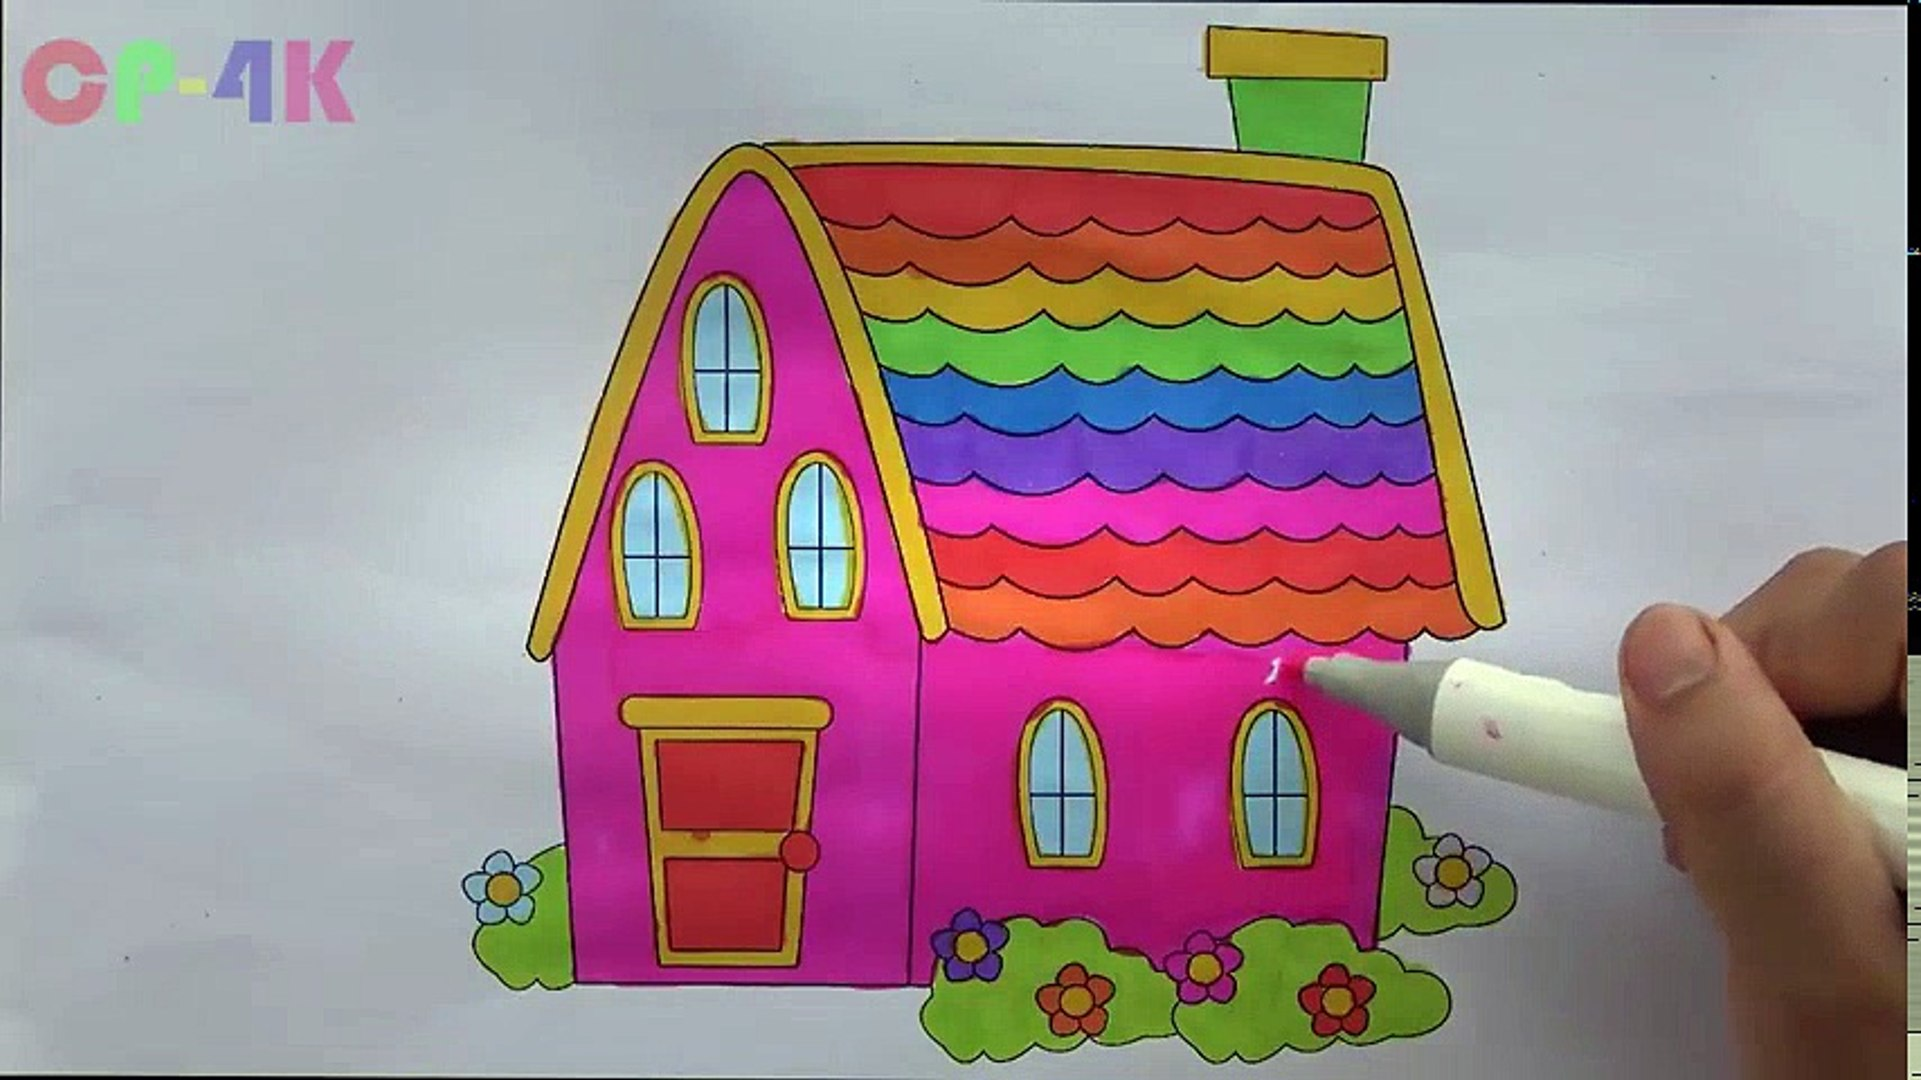 Rainbow House Colorful Coloring How To Draw House Colours Children Drawing Cp 4k Educational Child Channel Video Dailymotion